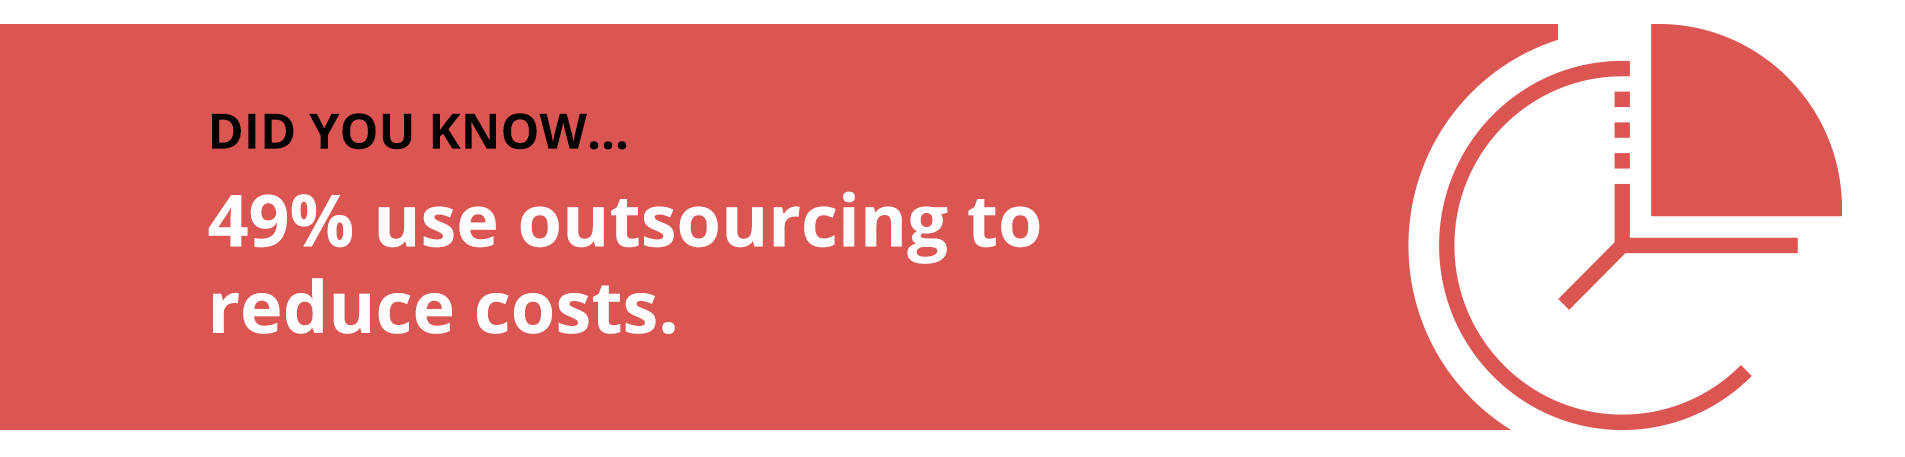 Outsourcing Statistic